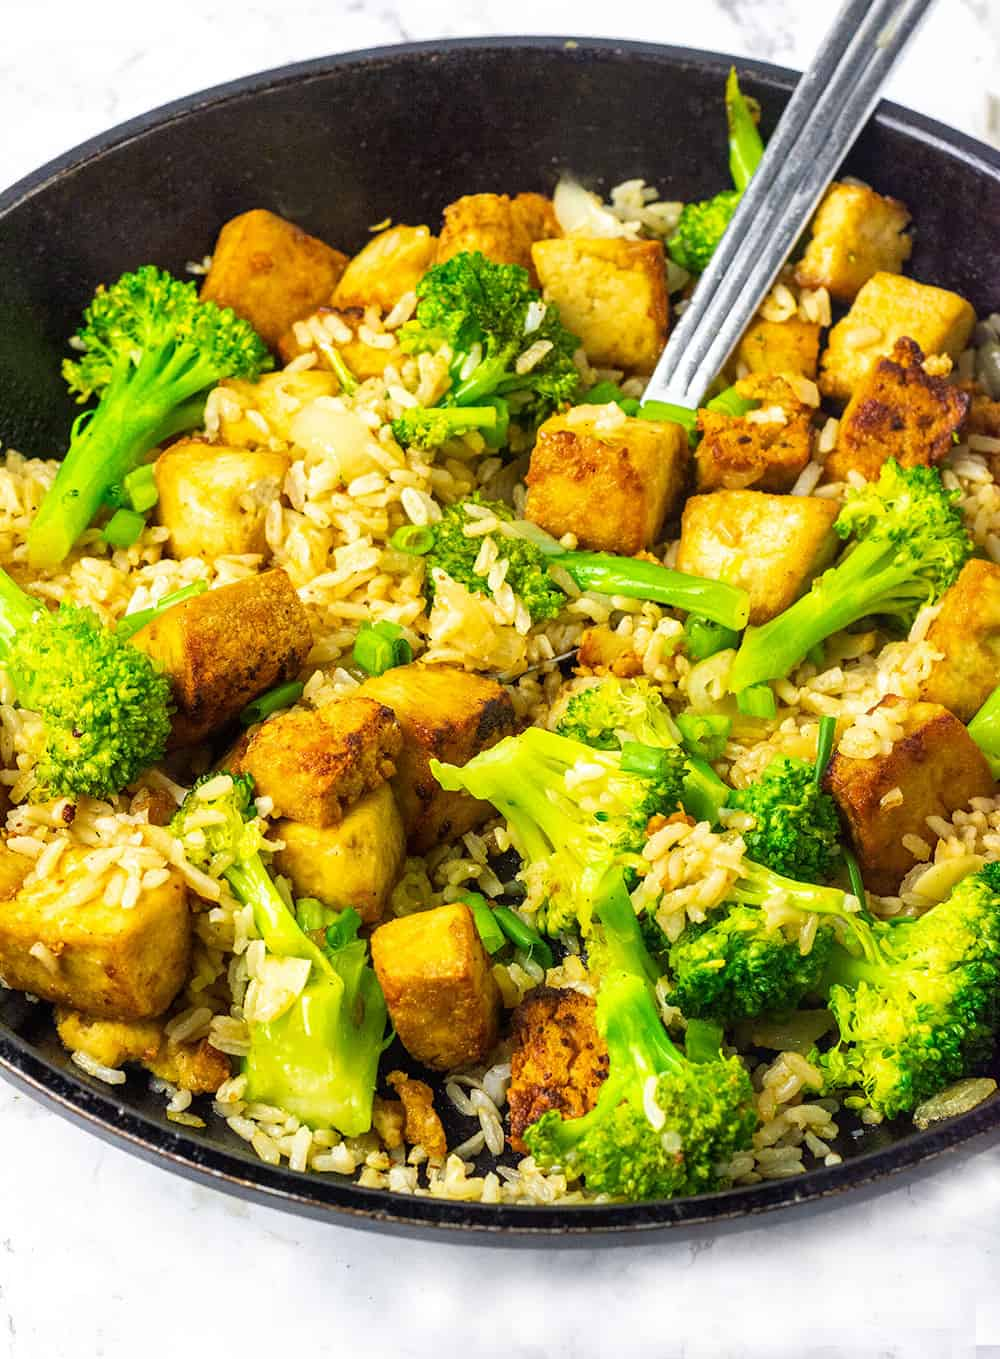 Marinated tofu fried rice with broccoli and seasoned tofu in a skillet